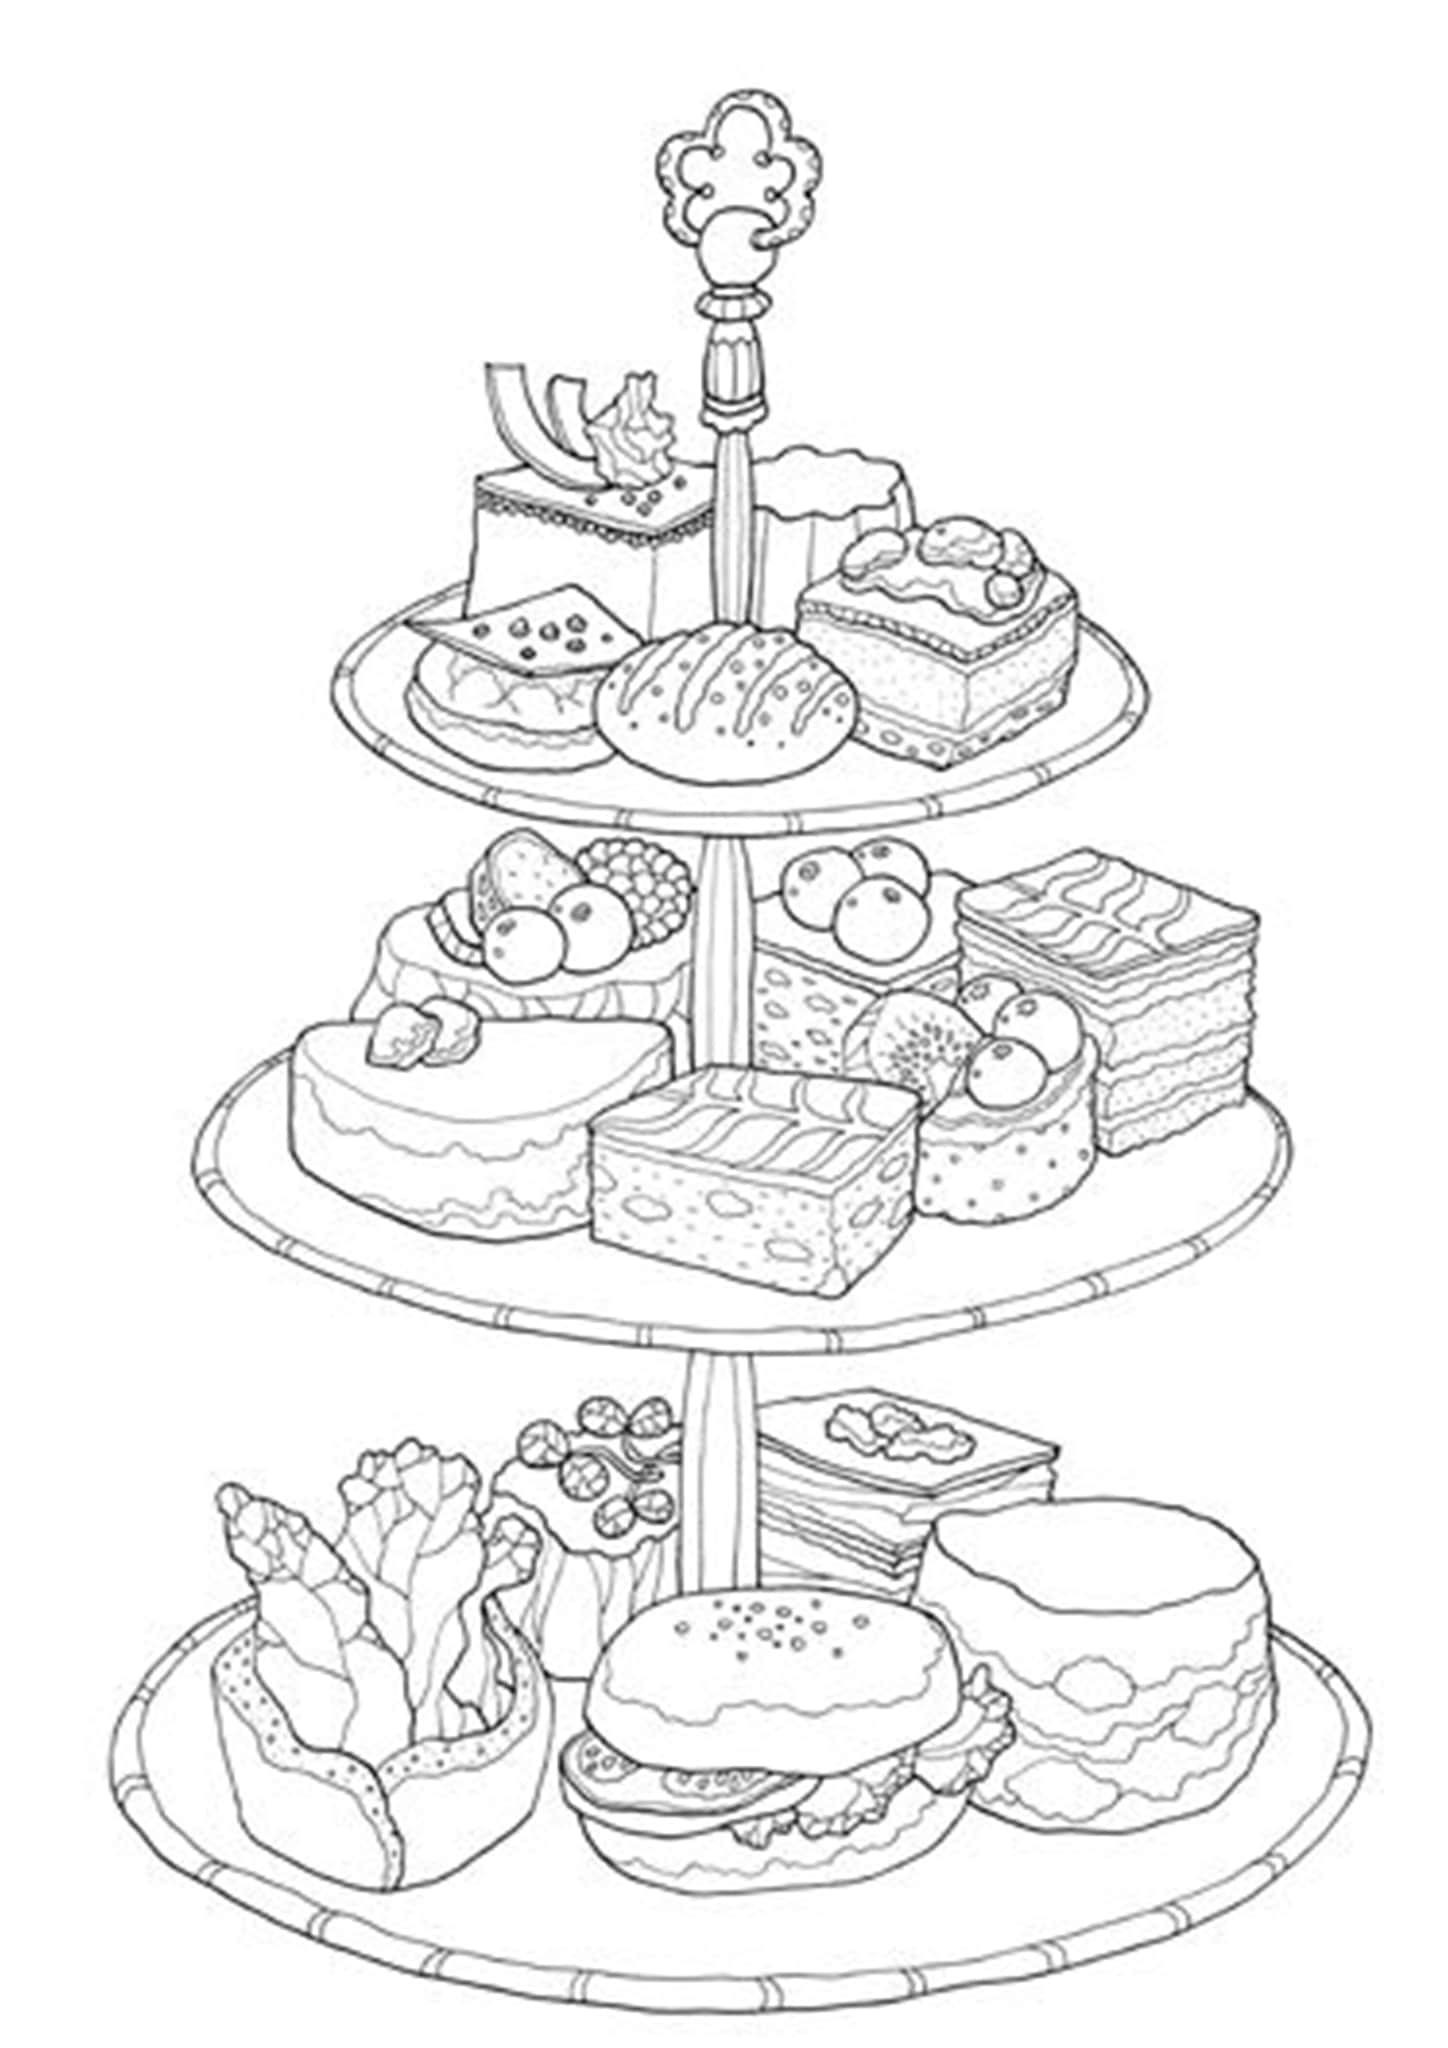 simple cake coloring pages image result for colouring for kids coloring pages cool cake simple pages coloring